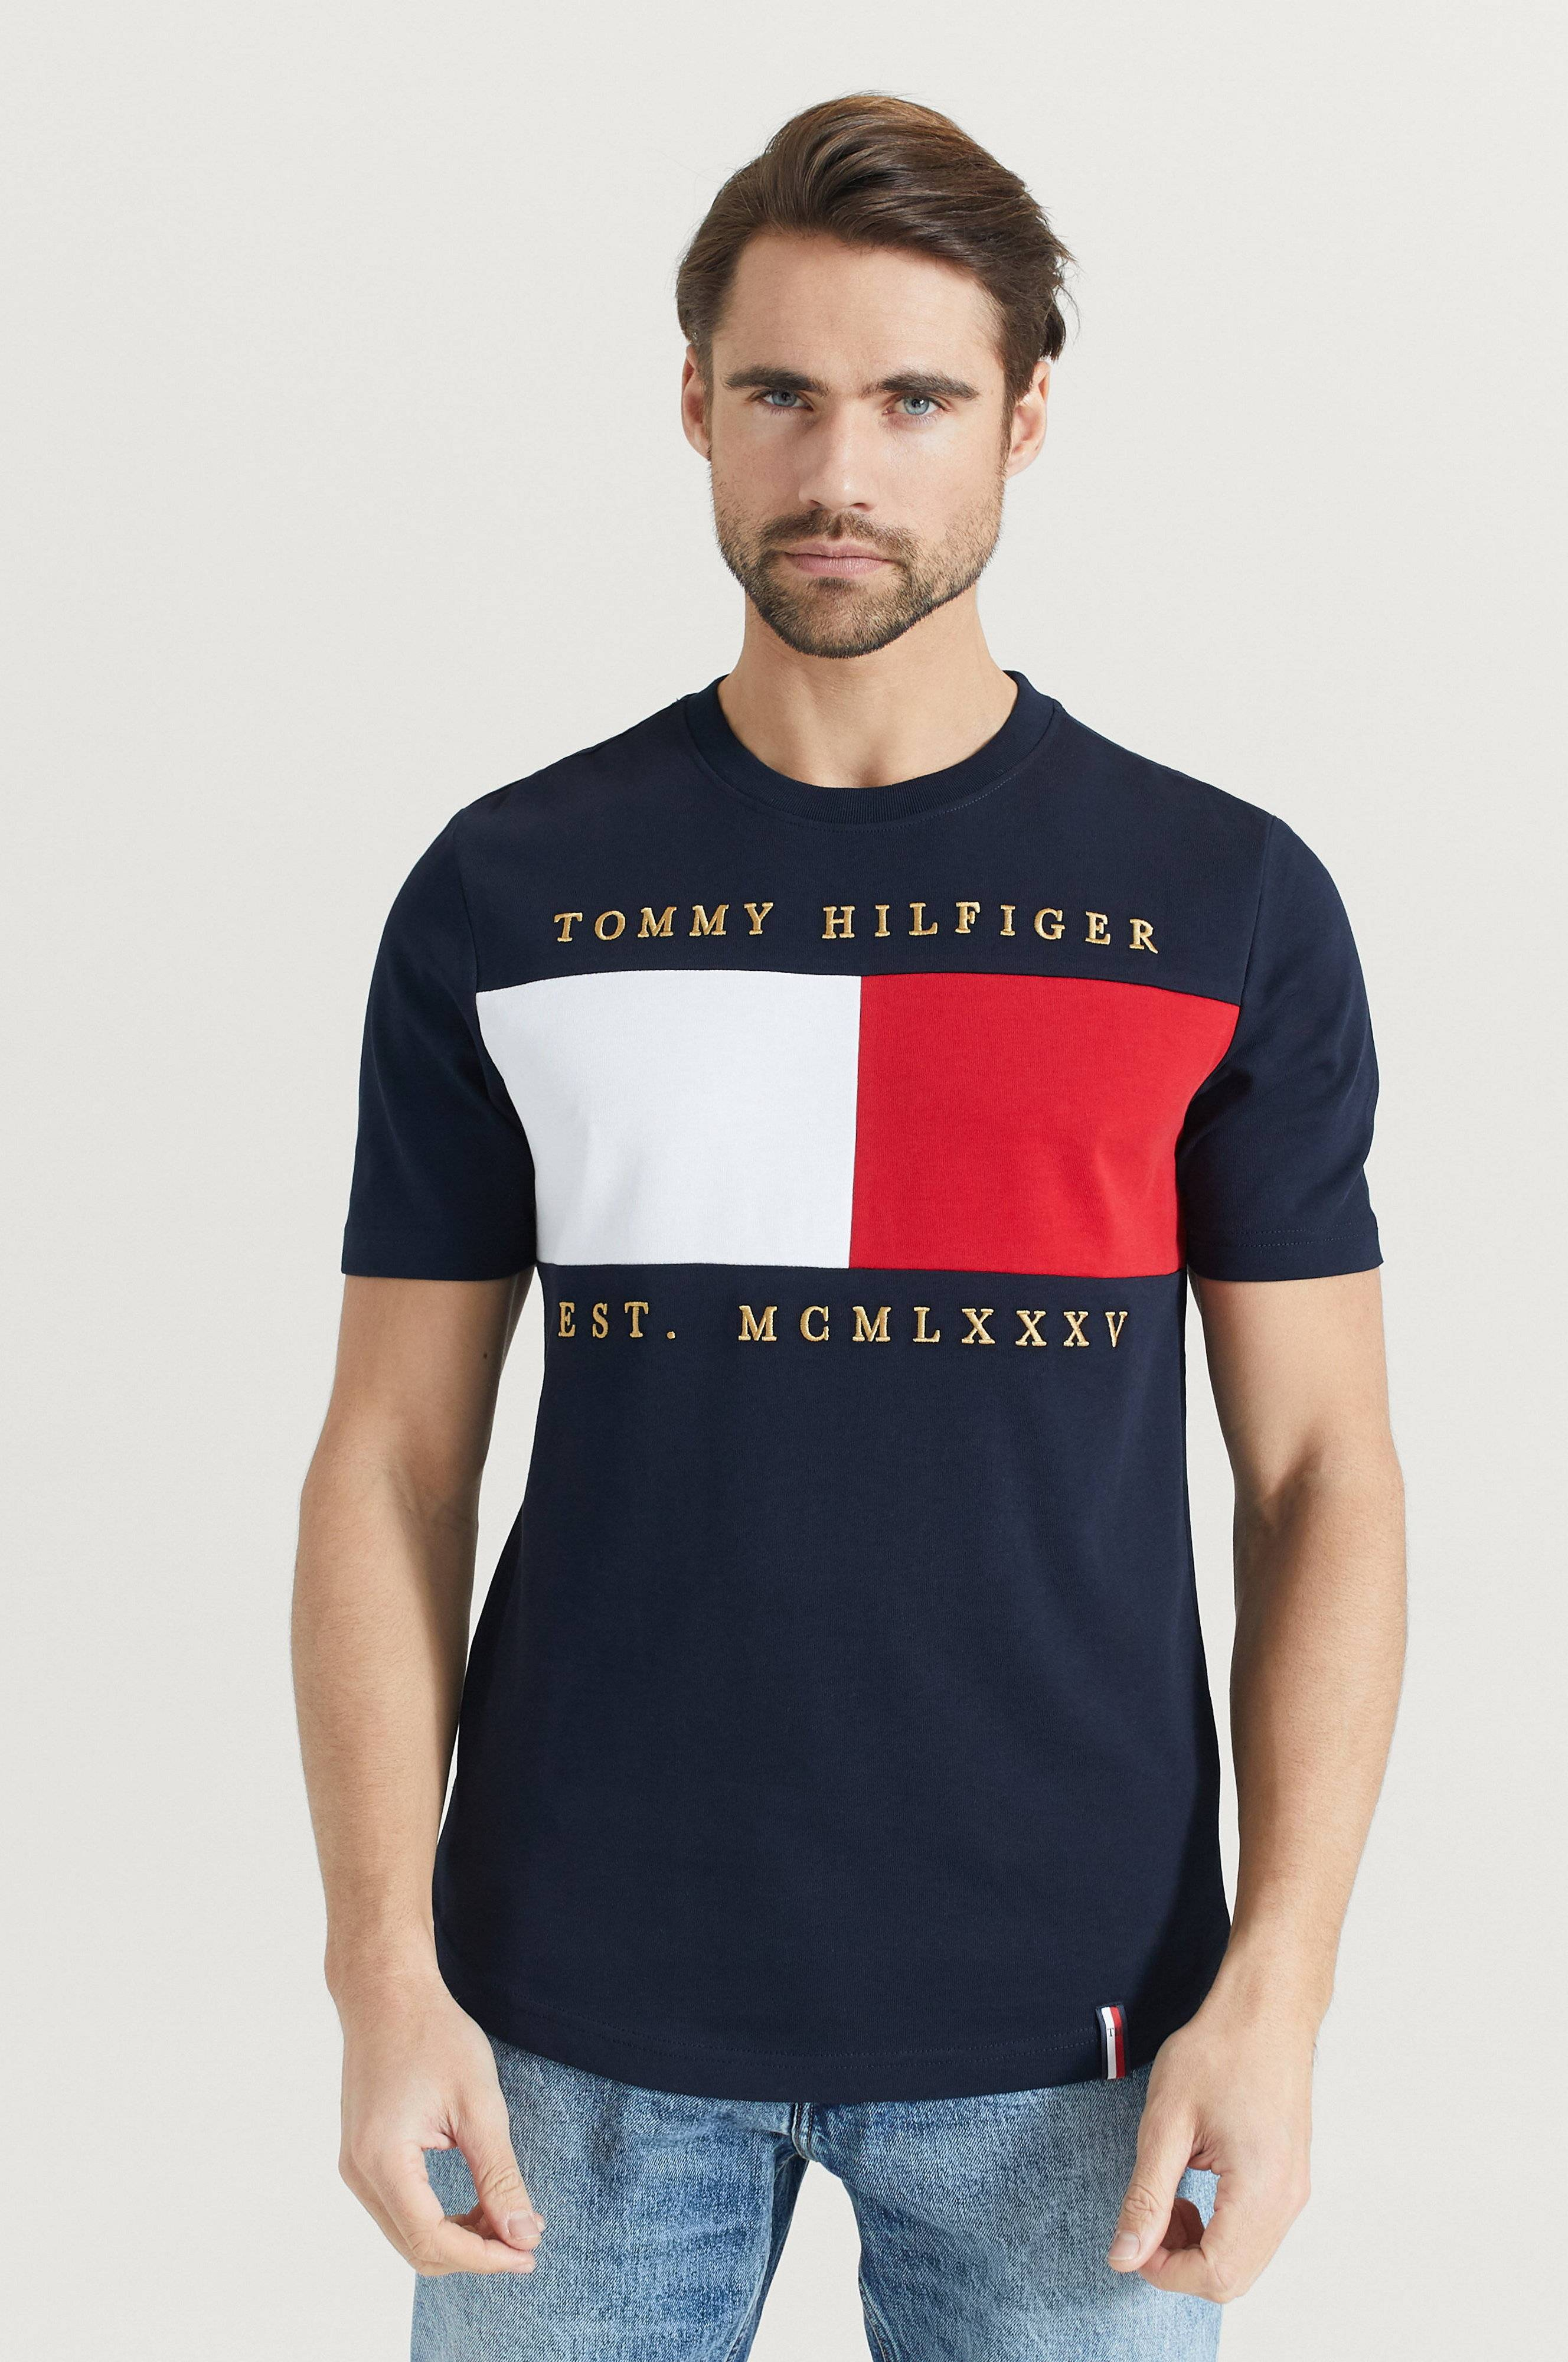 Tommy Hilfiger T-shirt Flag Chest Embroidery Relax Tee Blå